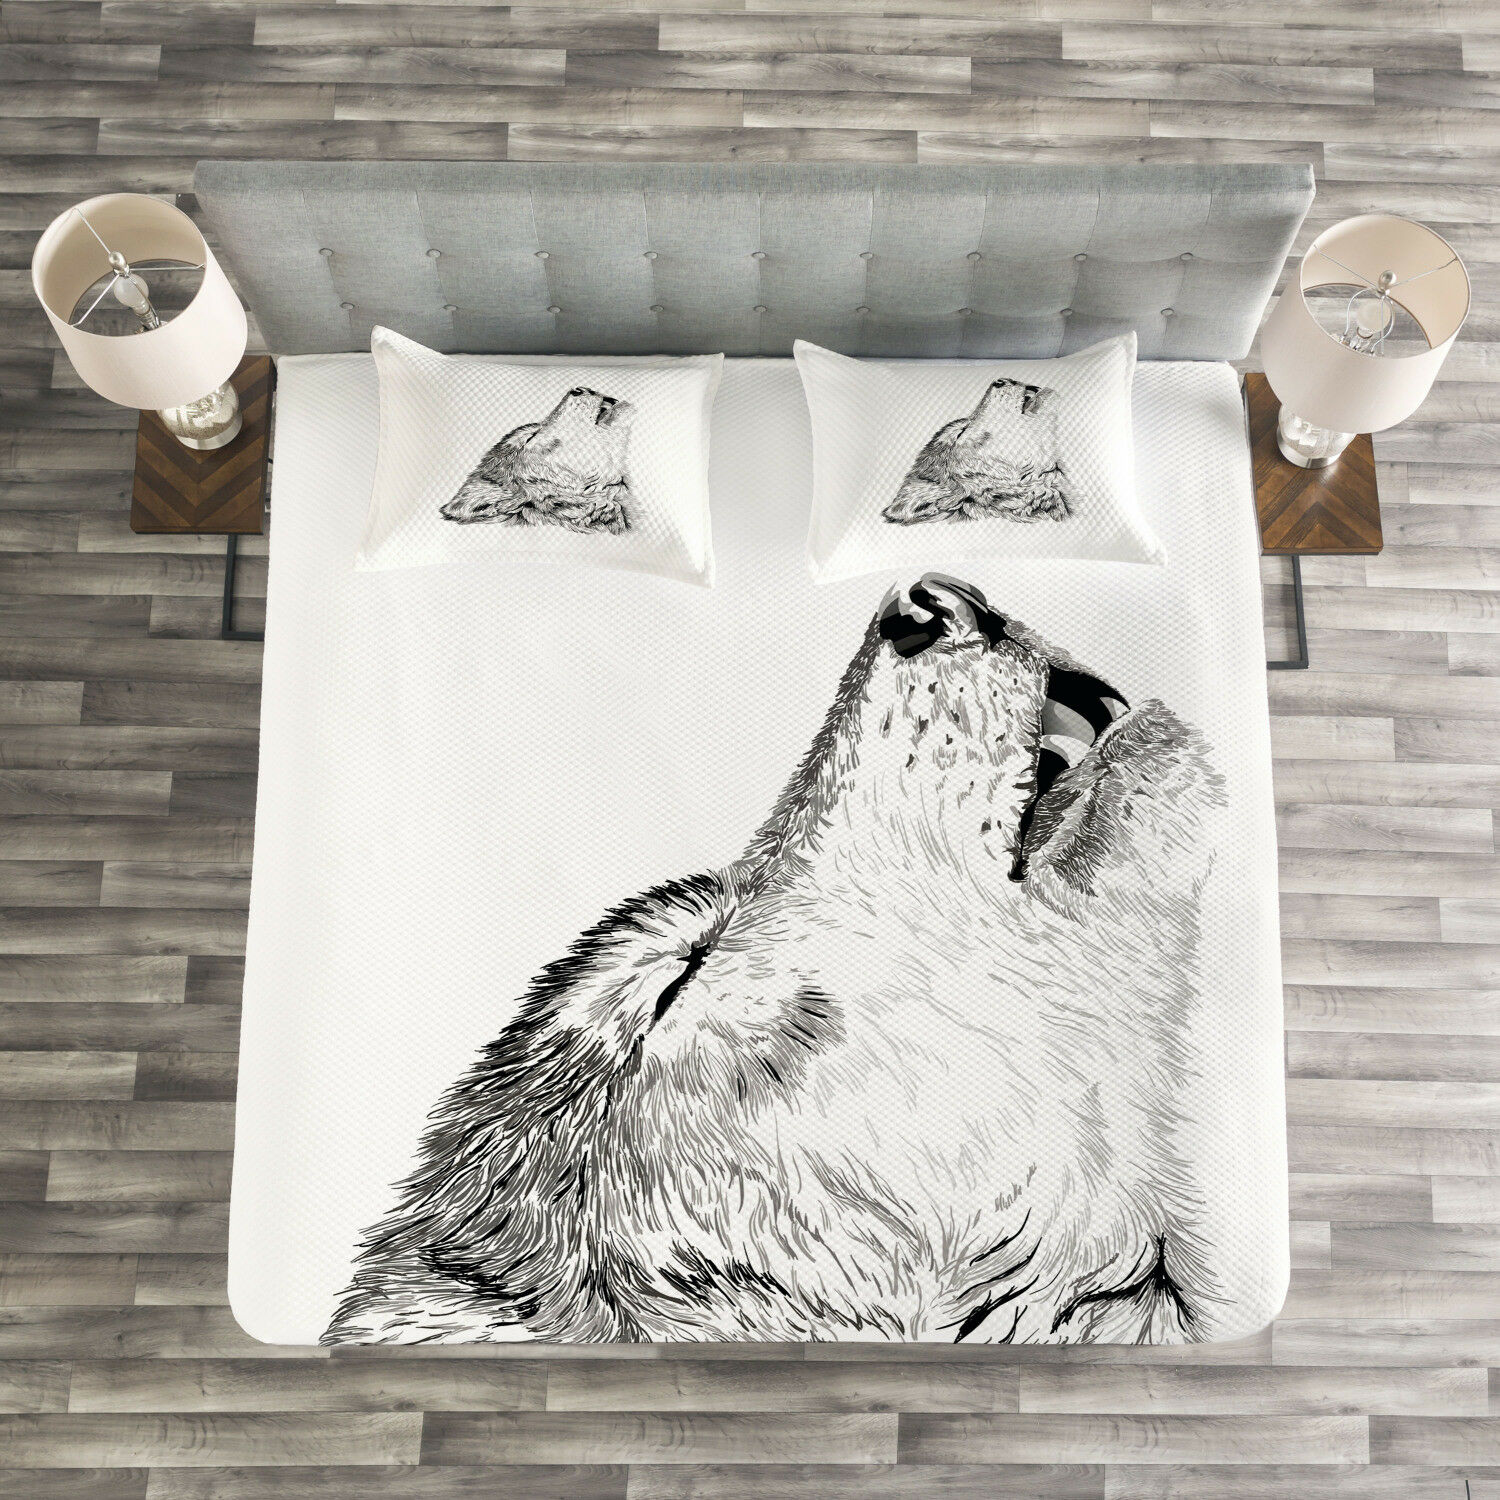 Wolf Quilted Bedspread & Pillow Shams Set, Monochrome Sketch Canine Print